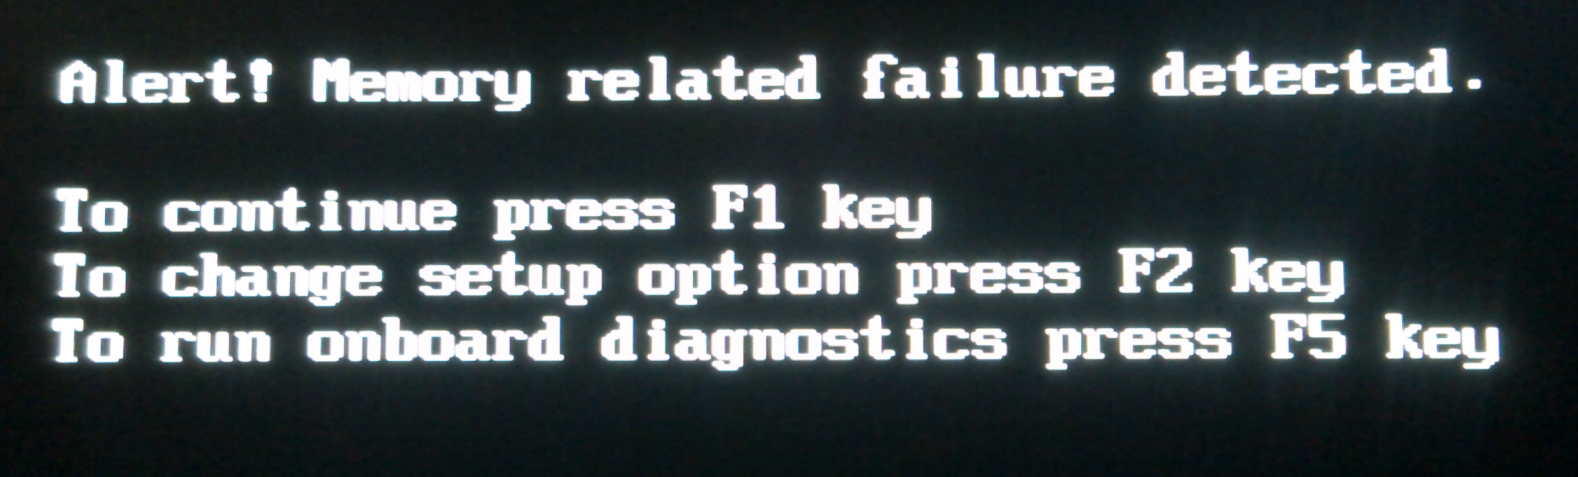 memory related failure detected 怎么处理?